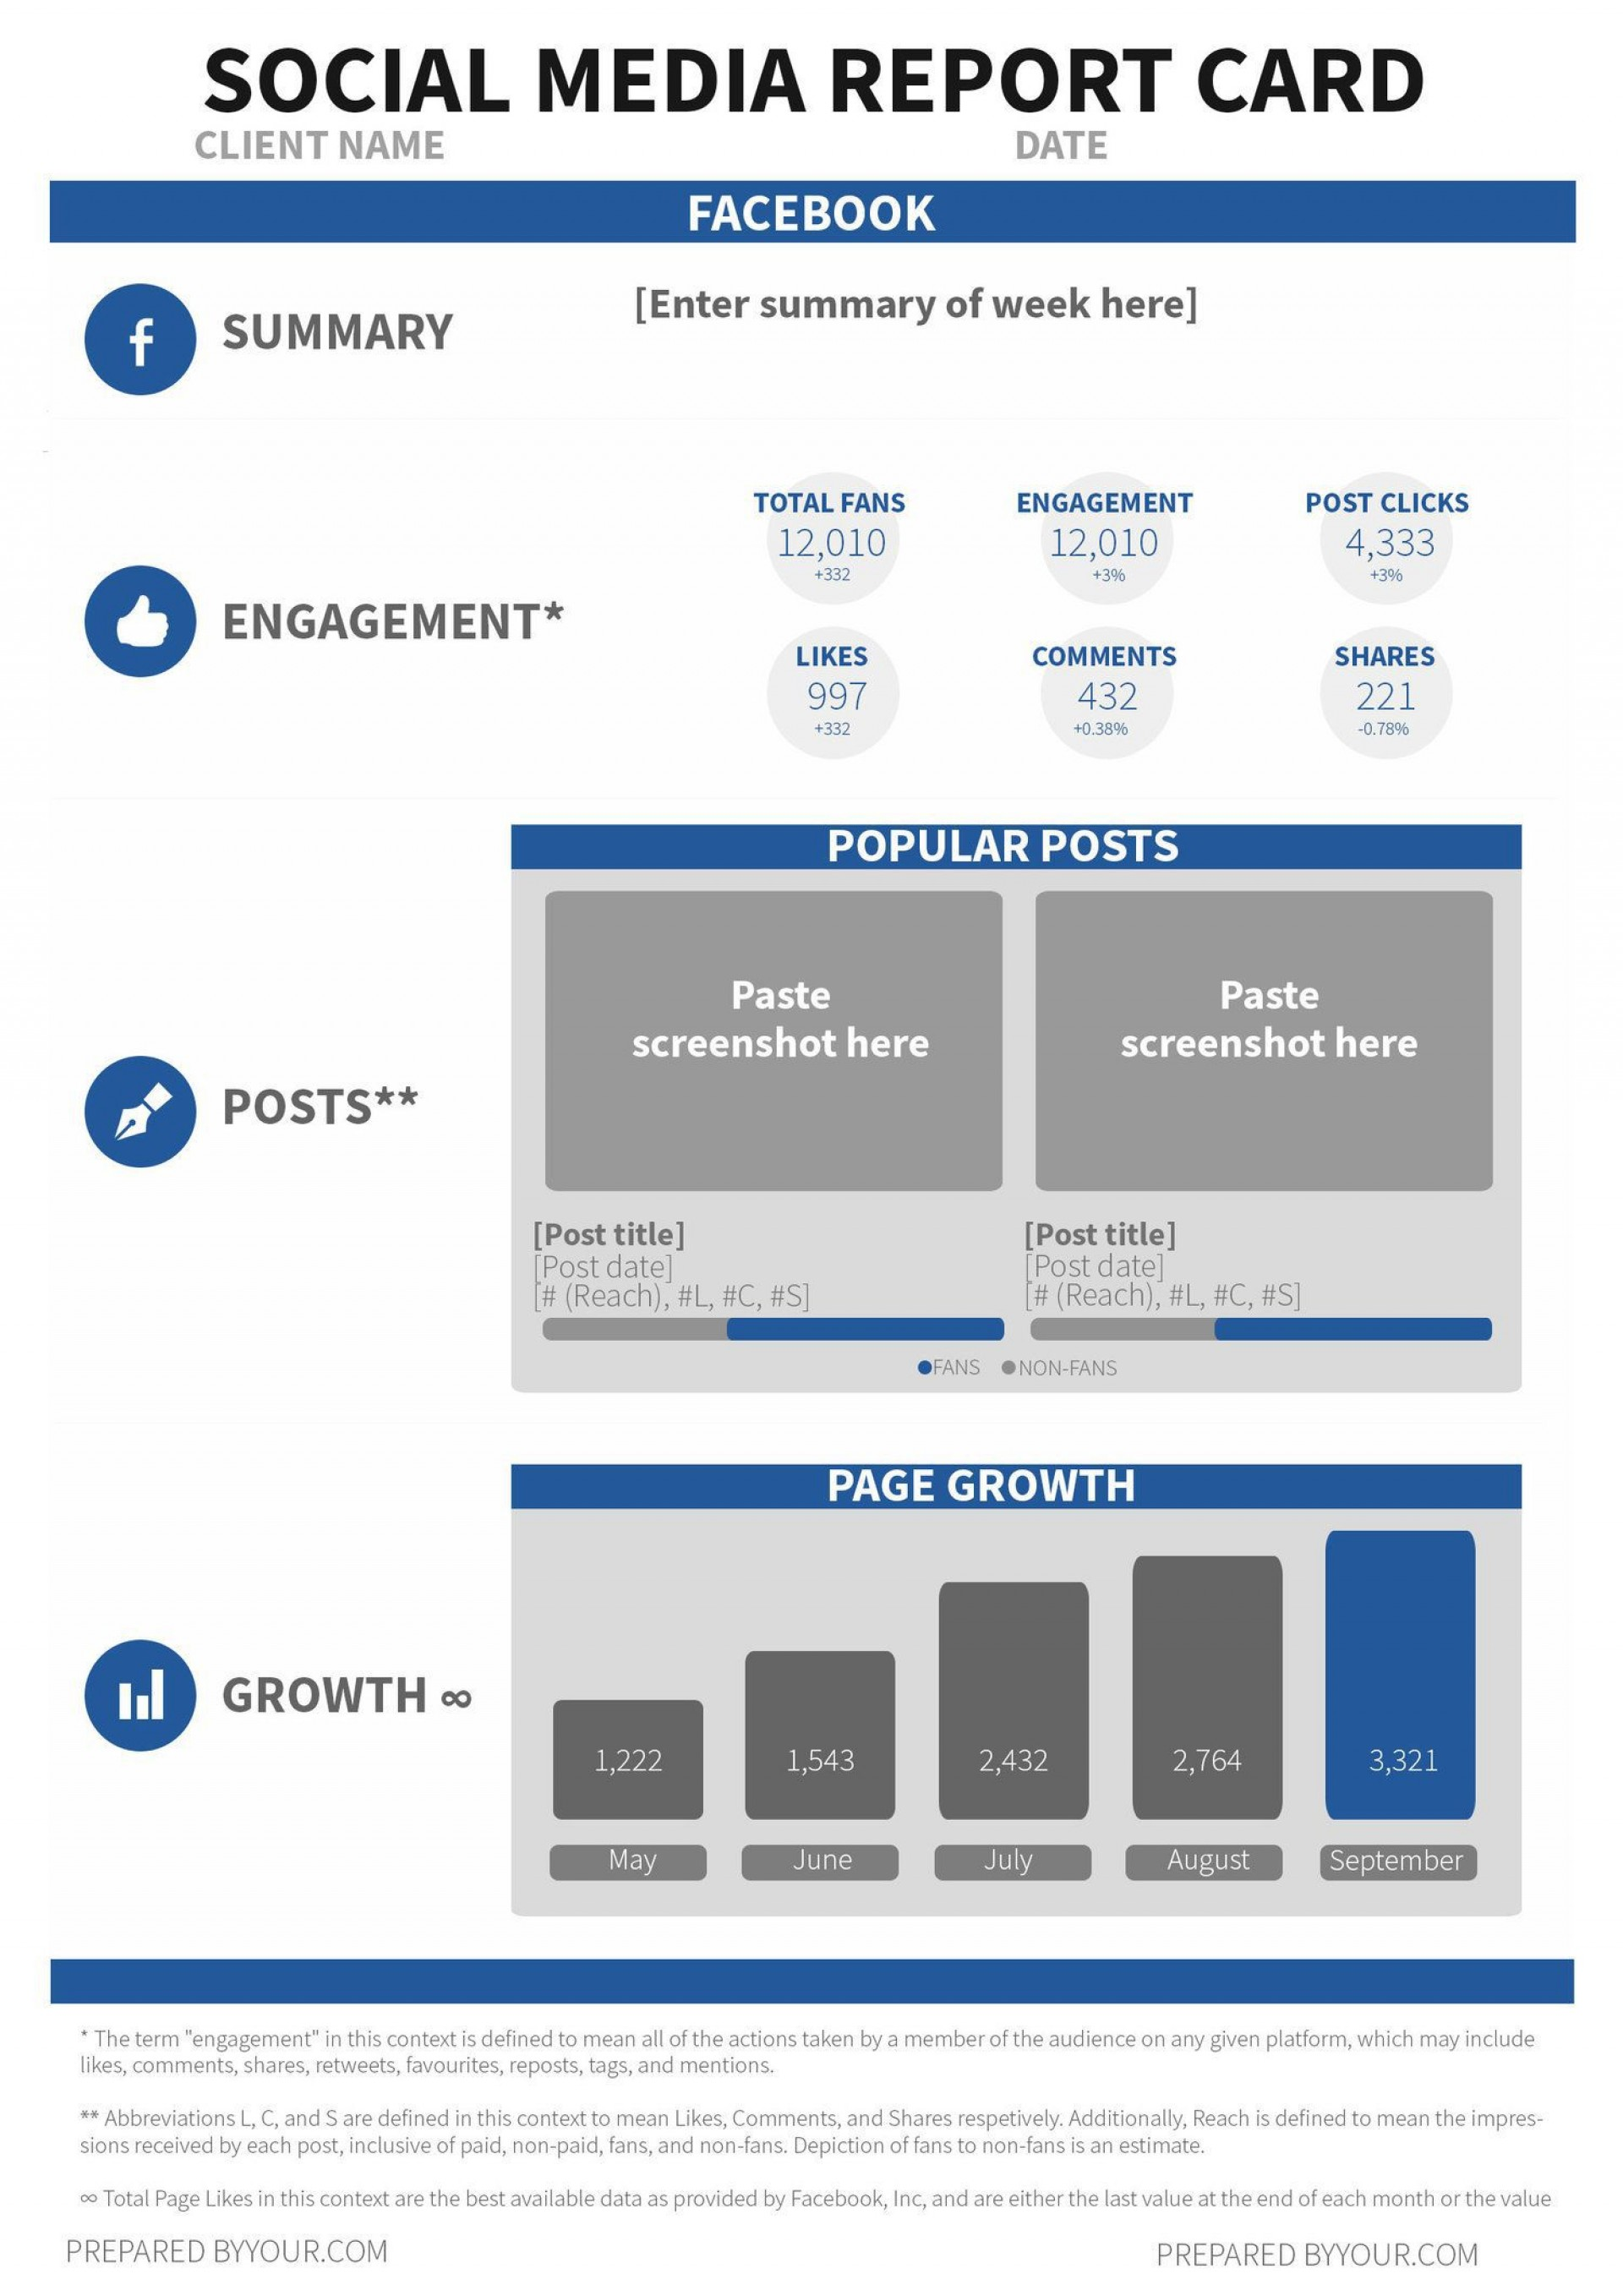 000 Astounding Social Media Report Template Sample  Powerpoint Free Download Analytic Word1920